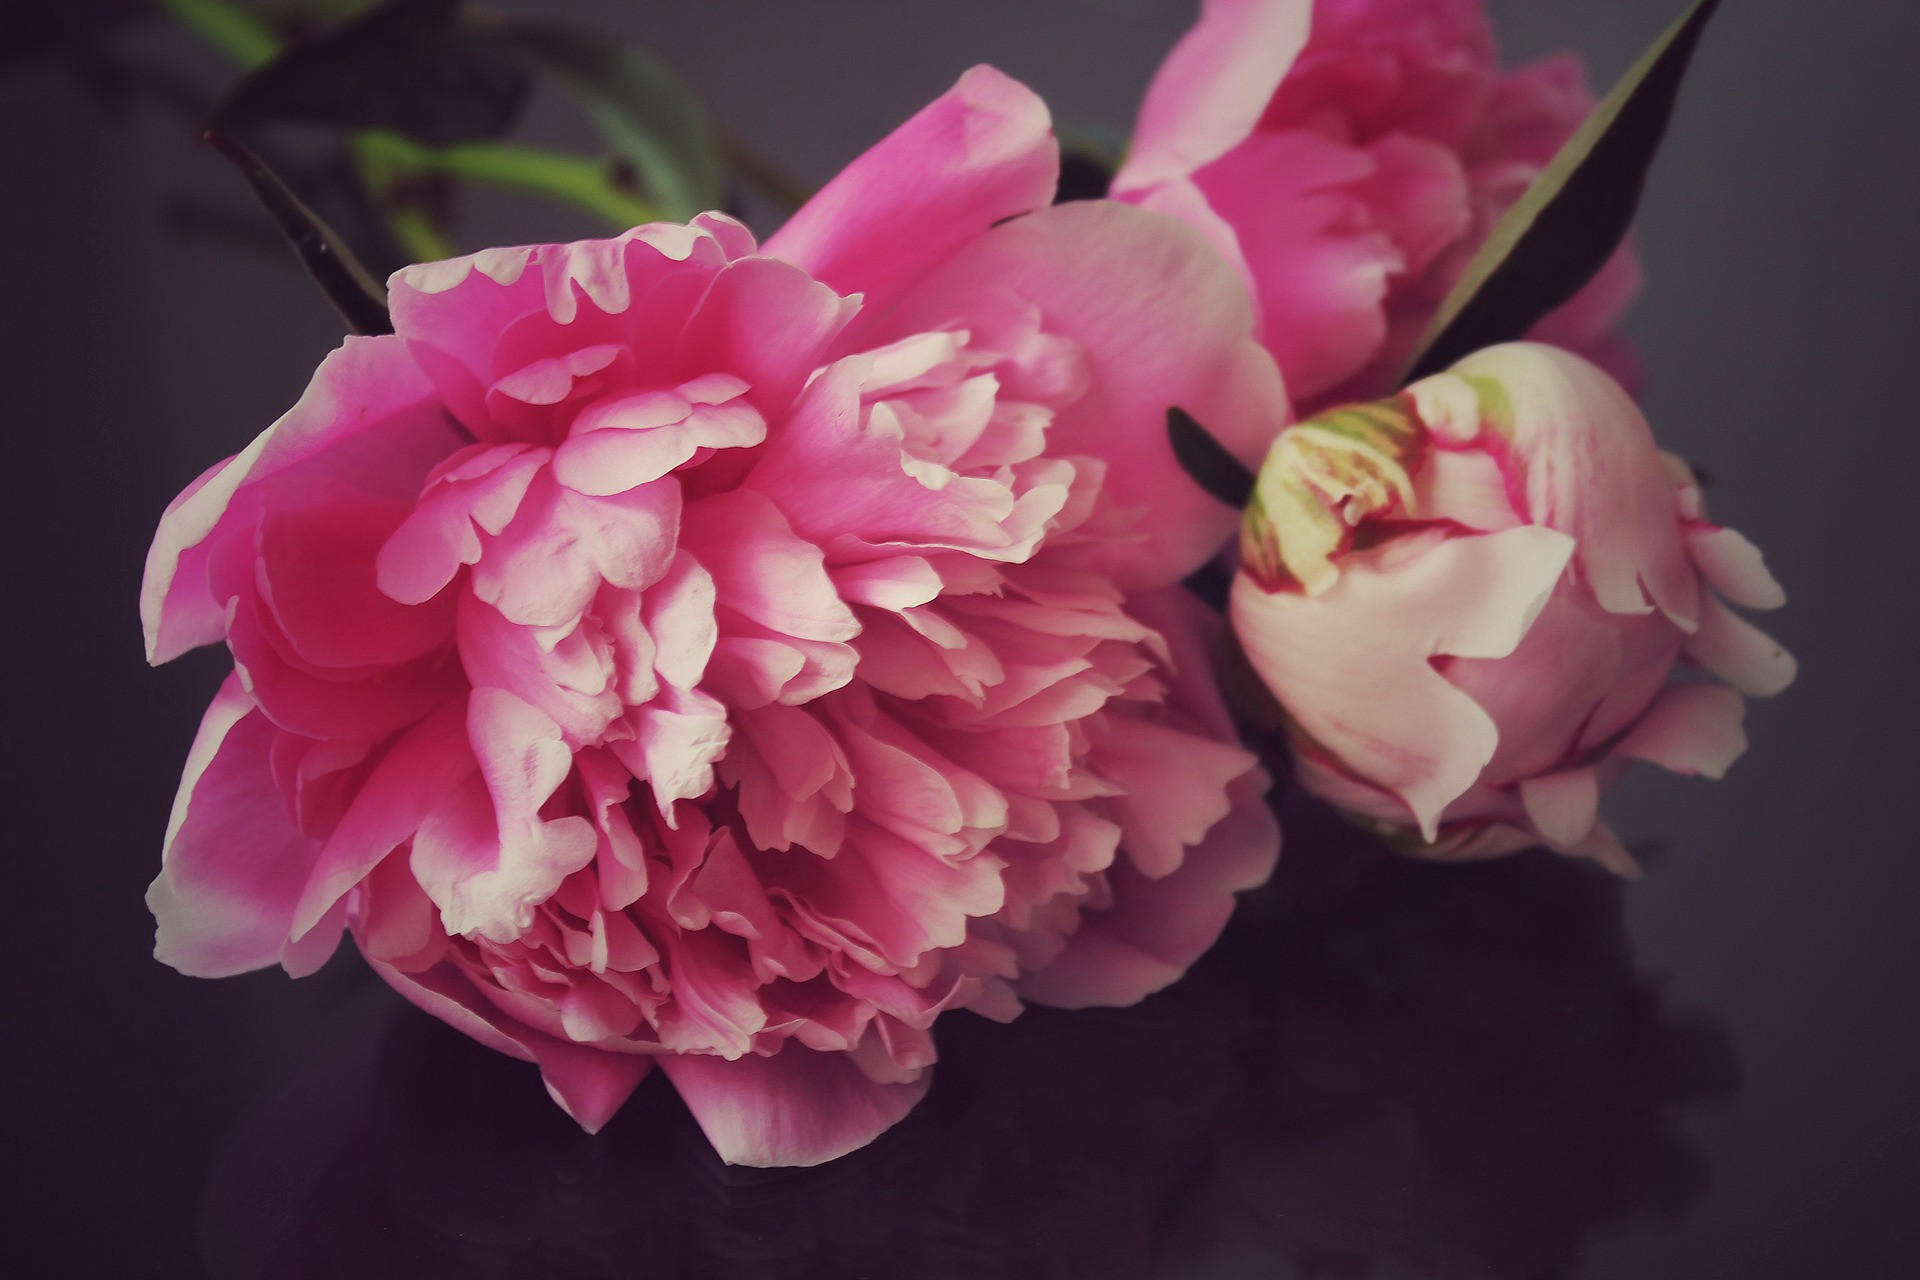 Close-up of peony blooms.